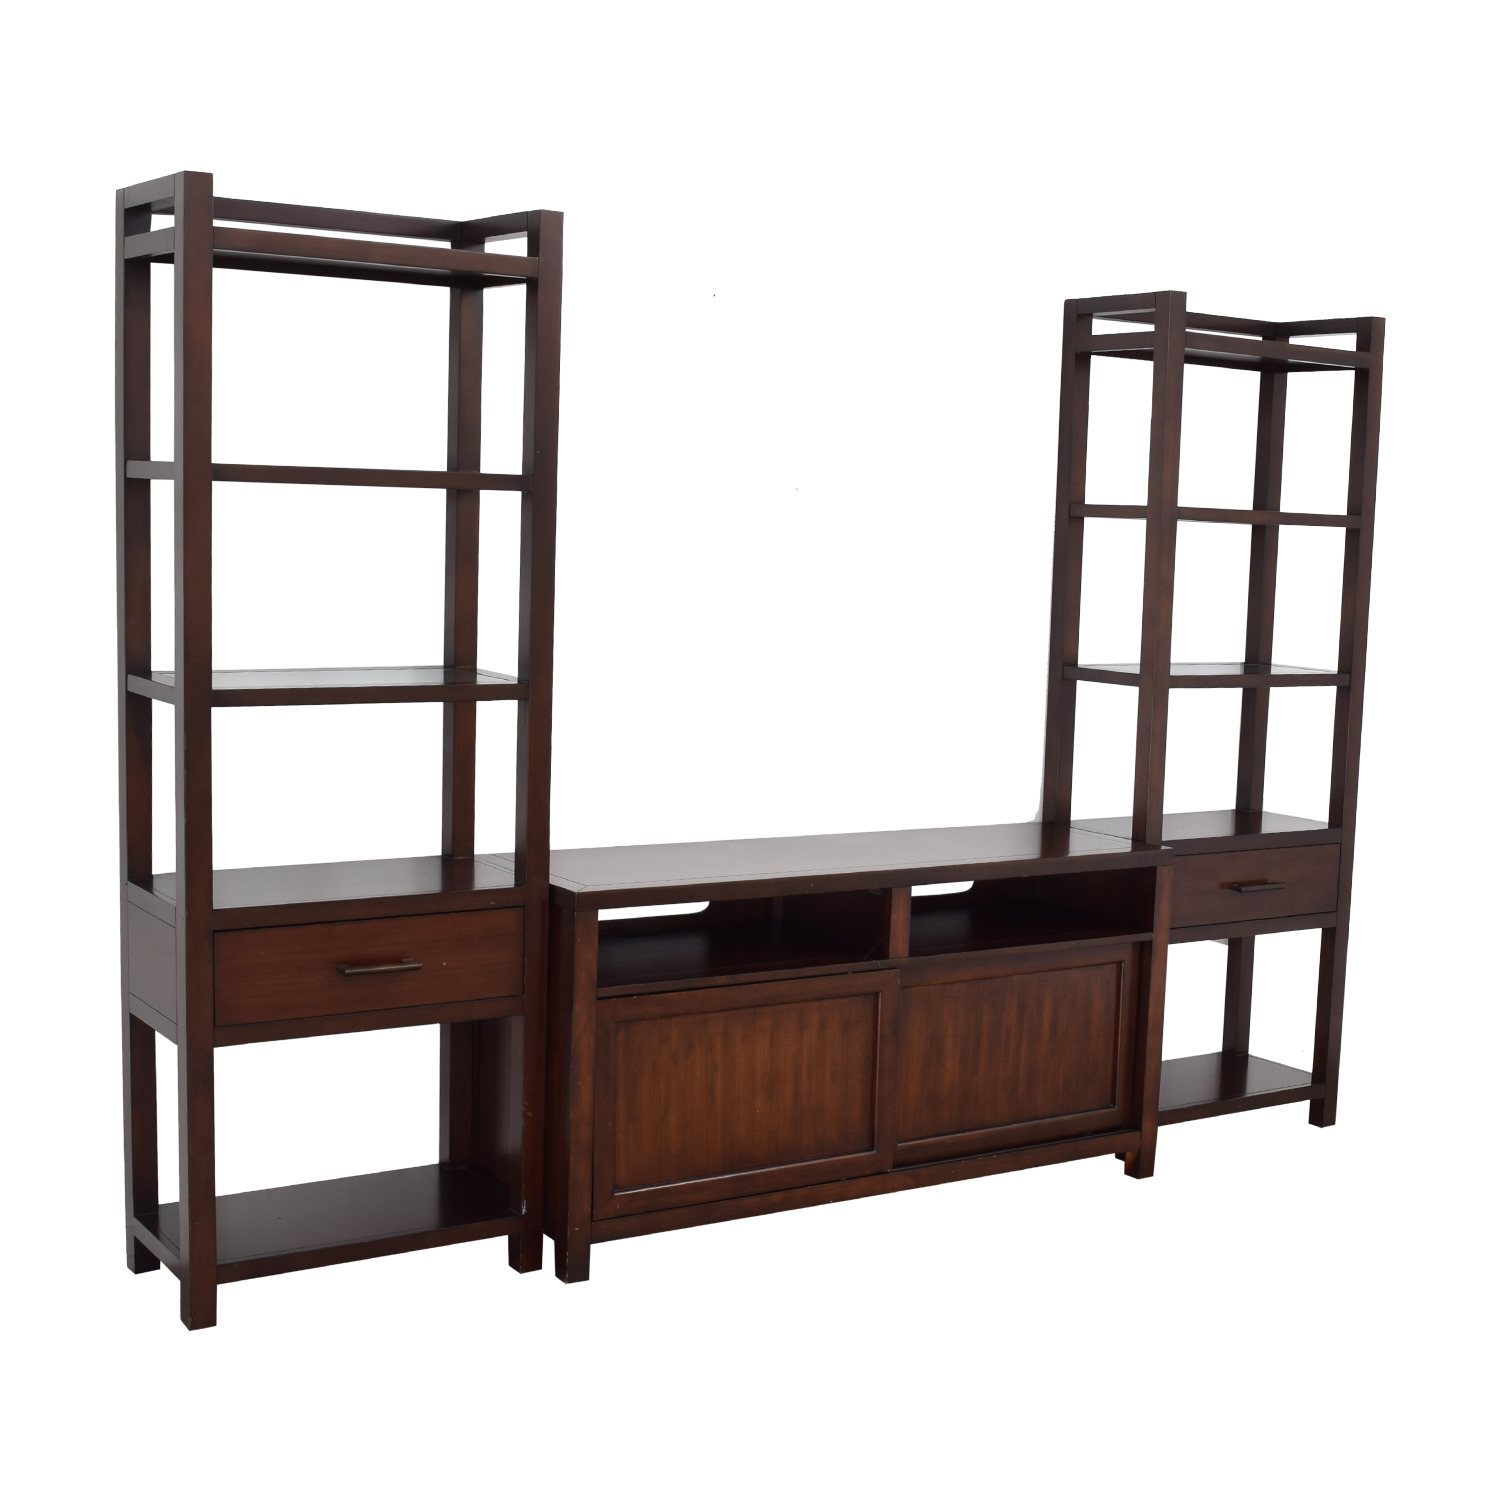 Crate & Barrel Crate & Barrel Media Console with Two Towers second hand